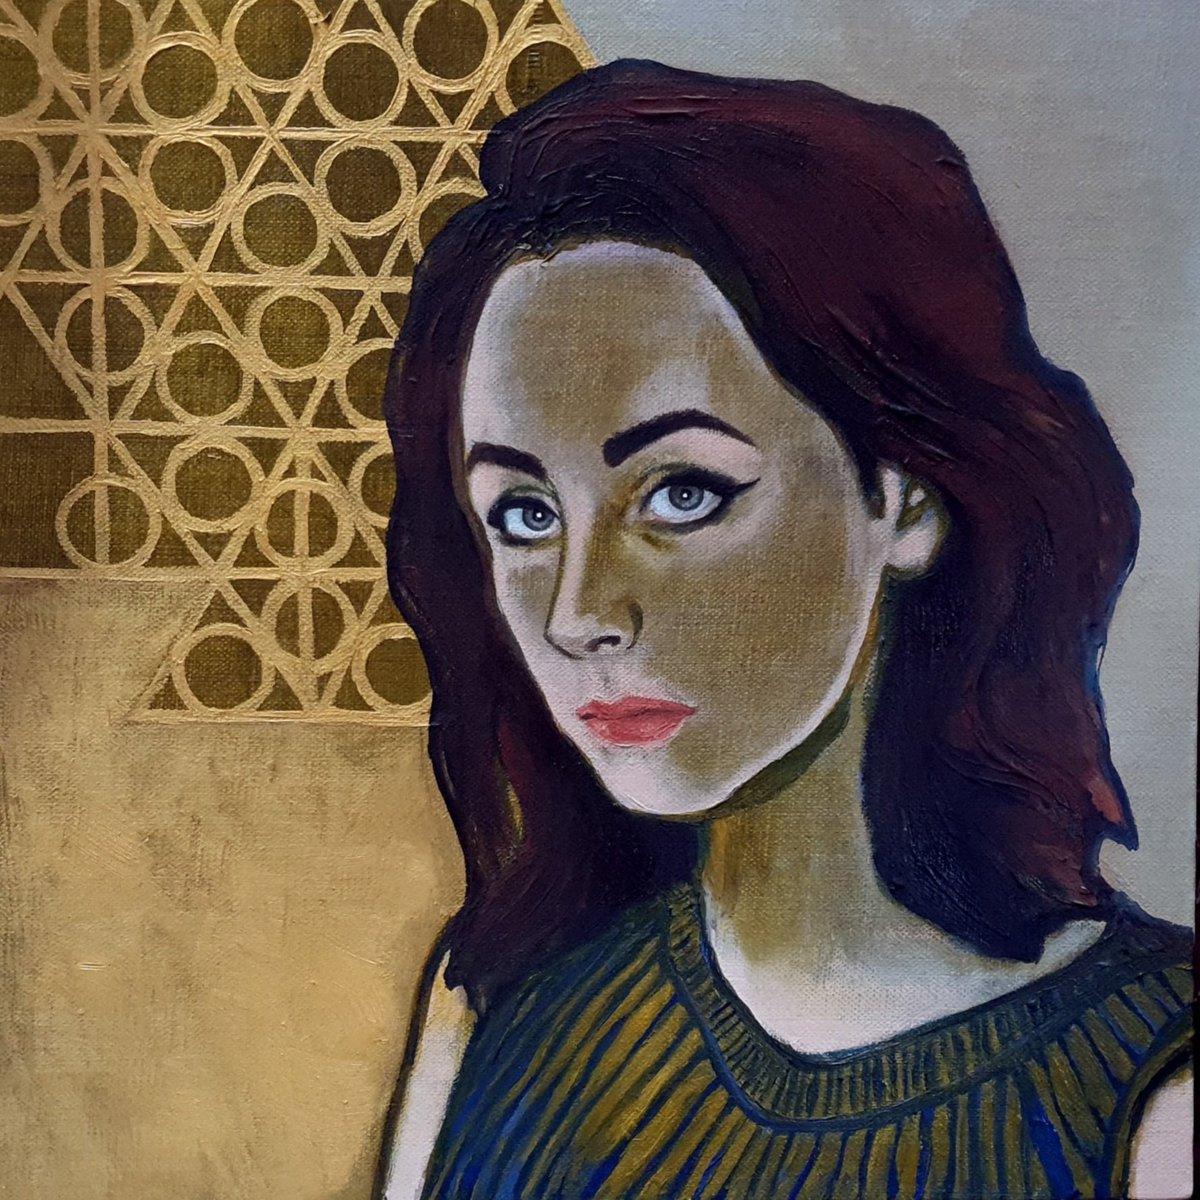 'Matilda': oil on linen canvas board (30cmx30cm). Fourth in a series of portraits using a limited palette and completion of the work in under 20 hours.  #portraitpainting #oilpainting #womenartists #painting #portraiture #lockdownportraits #contemporaryart https://t.co/Y8PhQNAVit